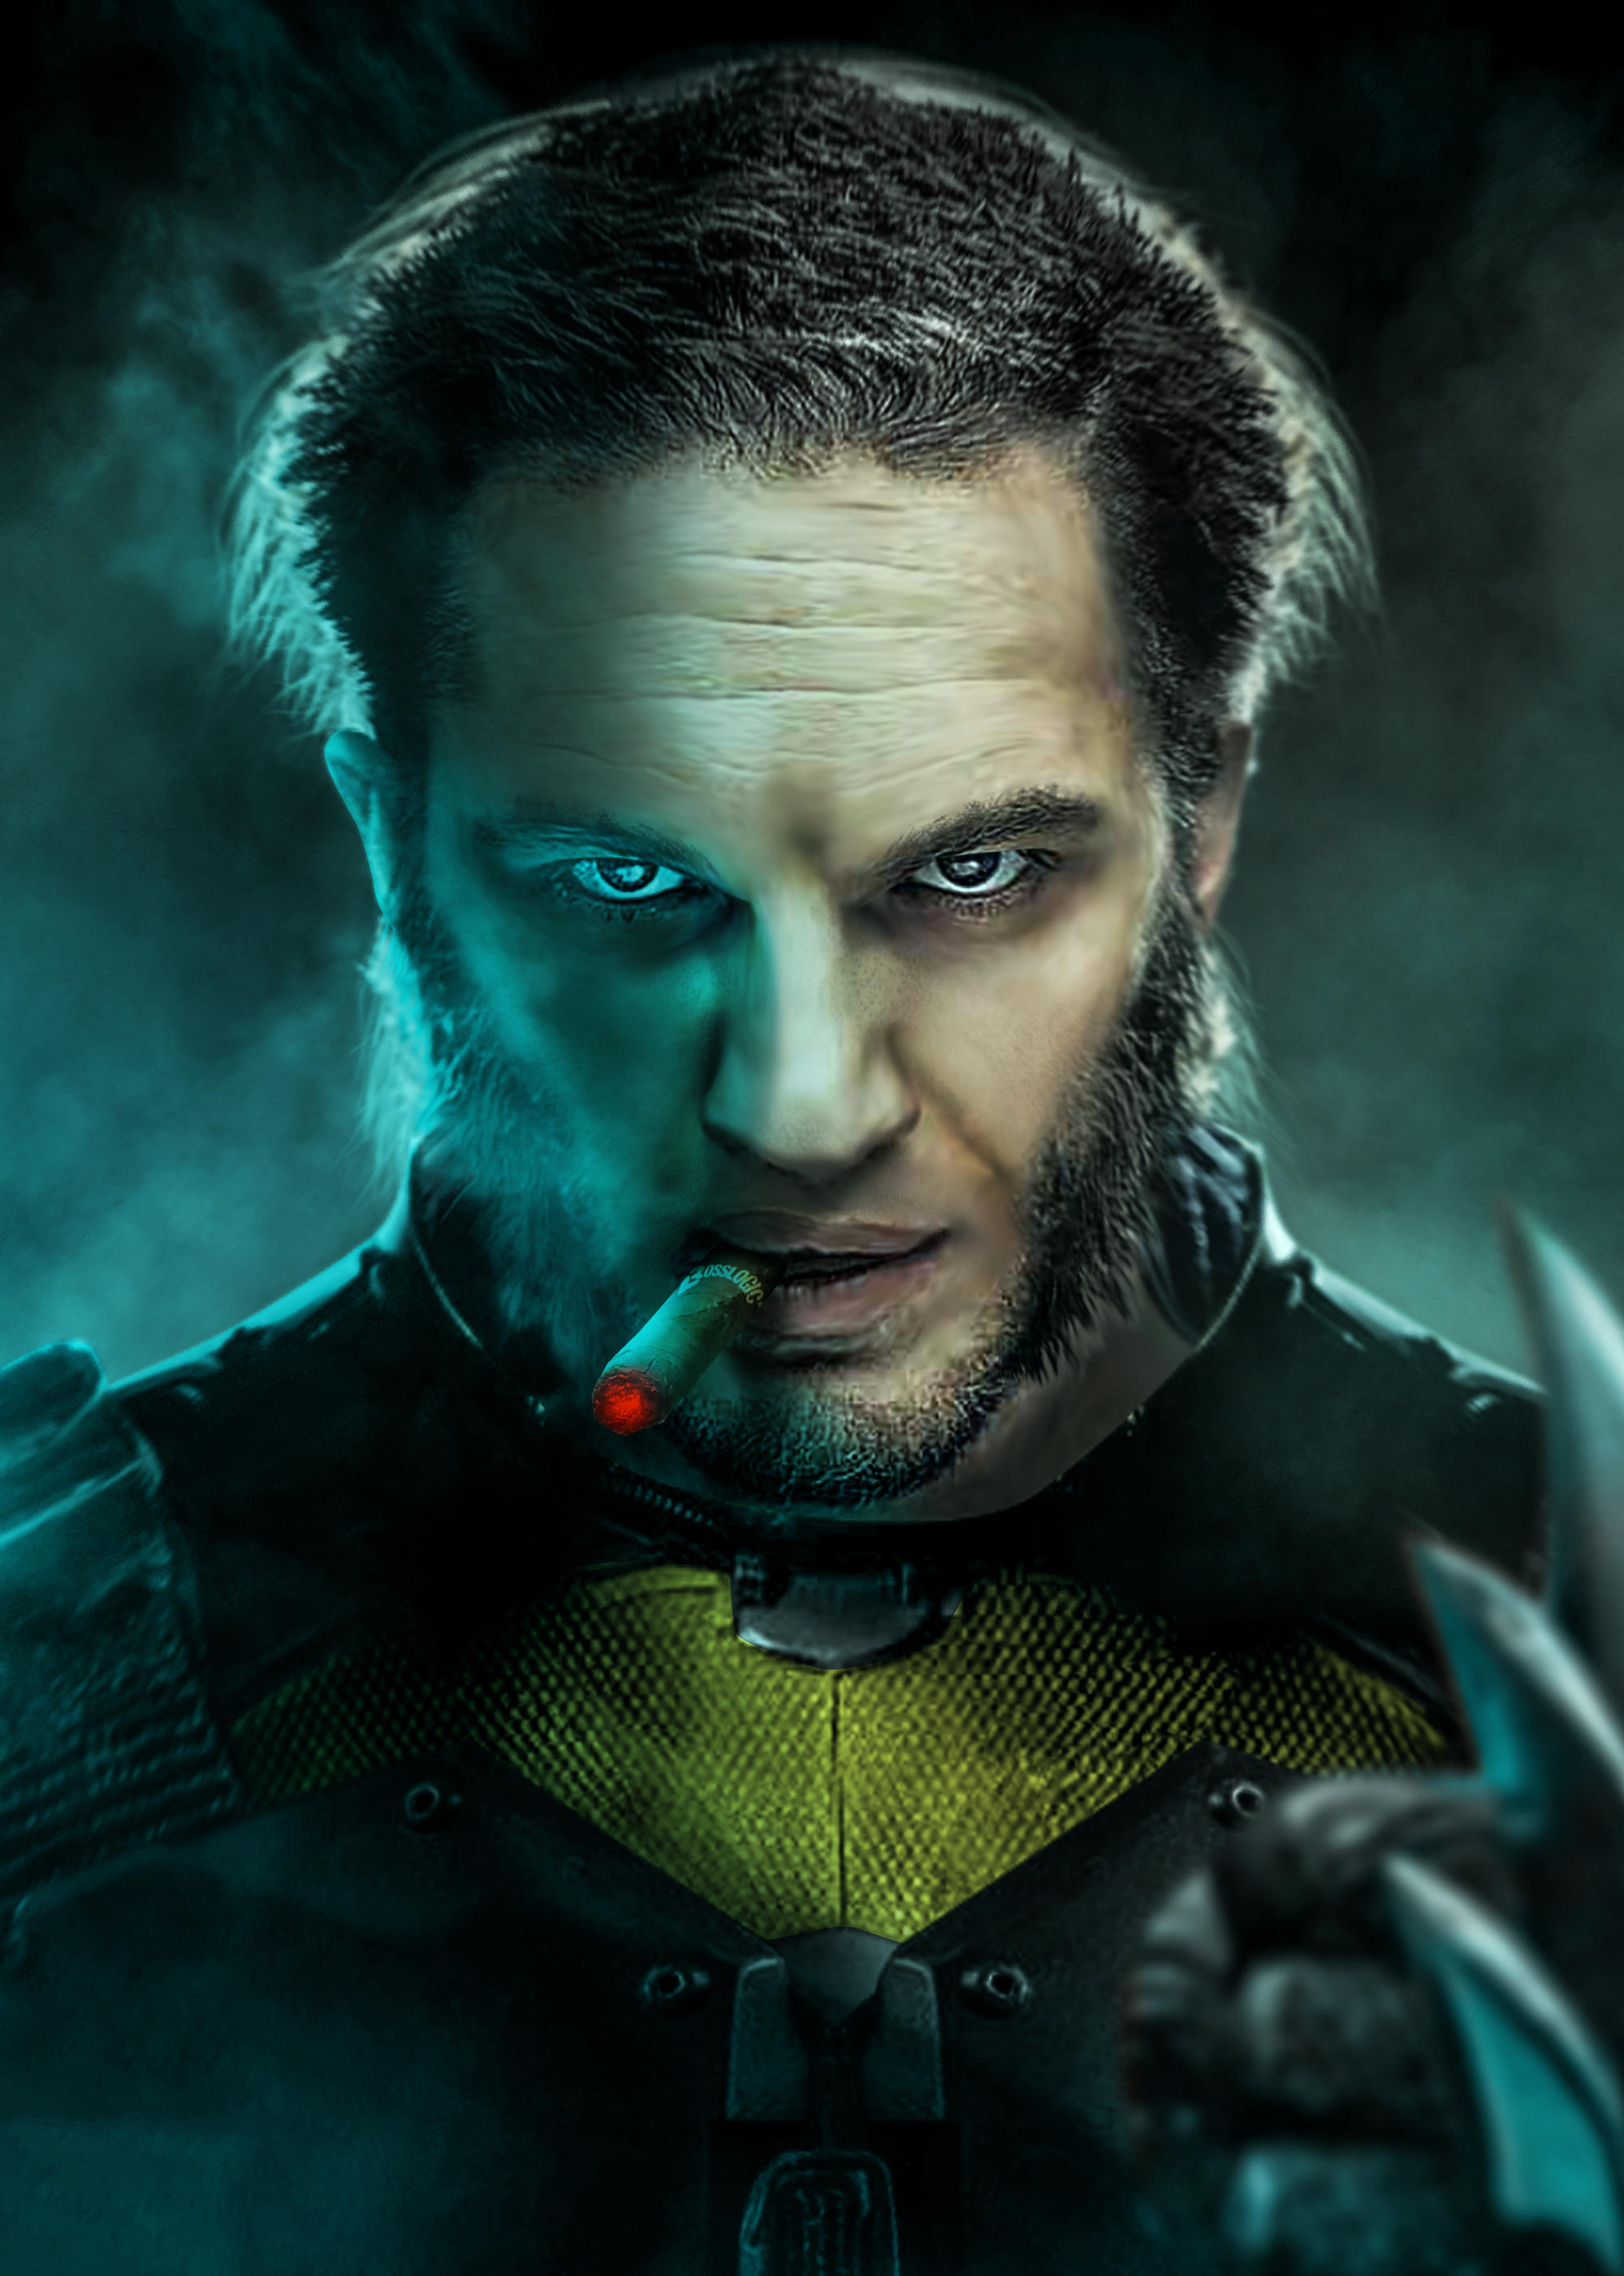 http://screenrant.com/wp-content/uploads/Tom-Hardy-Wolverine-by-Bosslogic.jpg